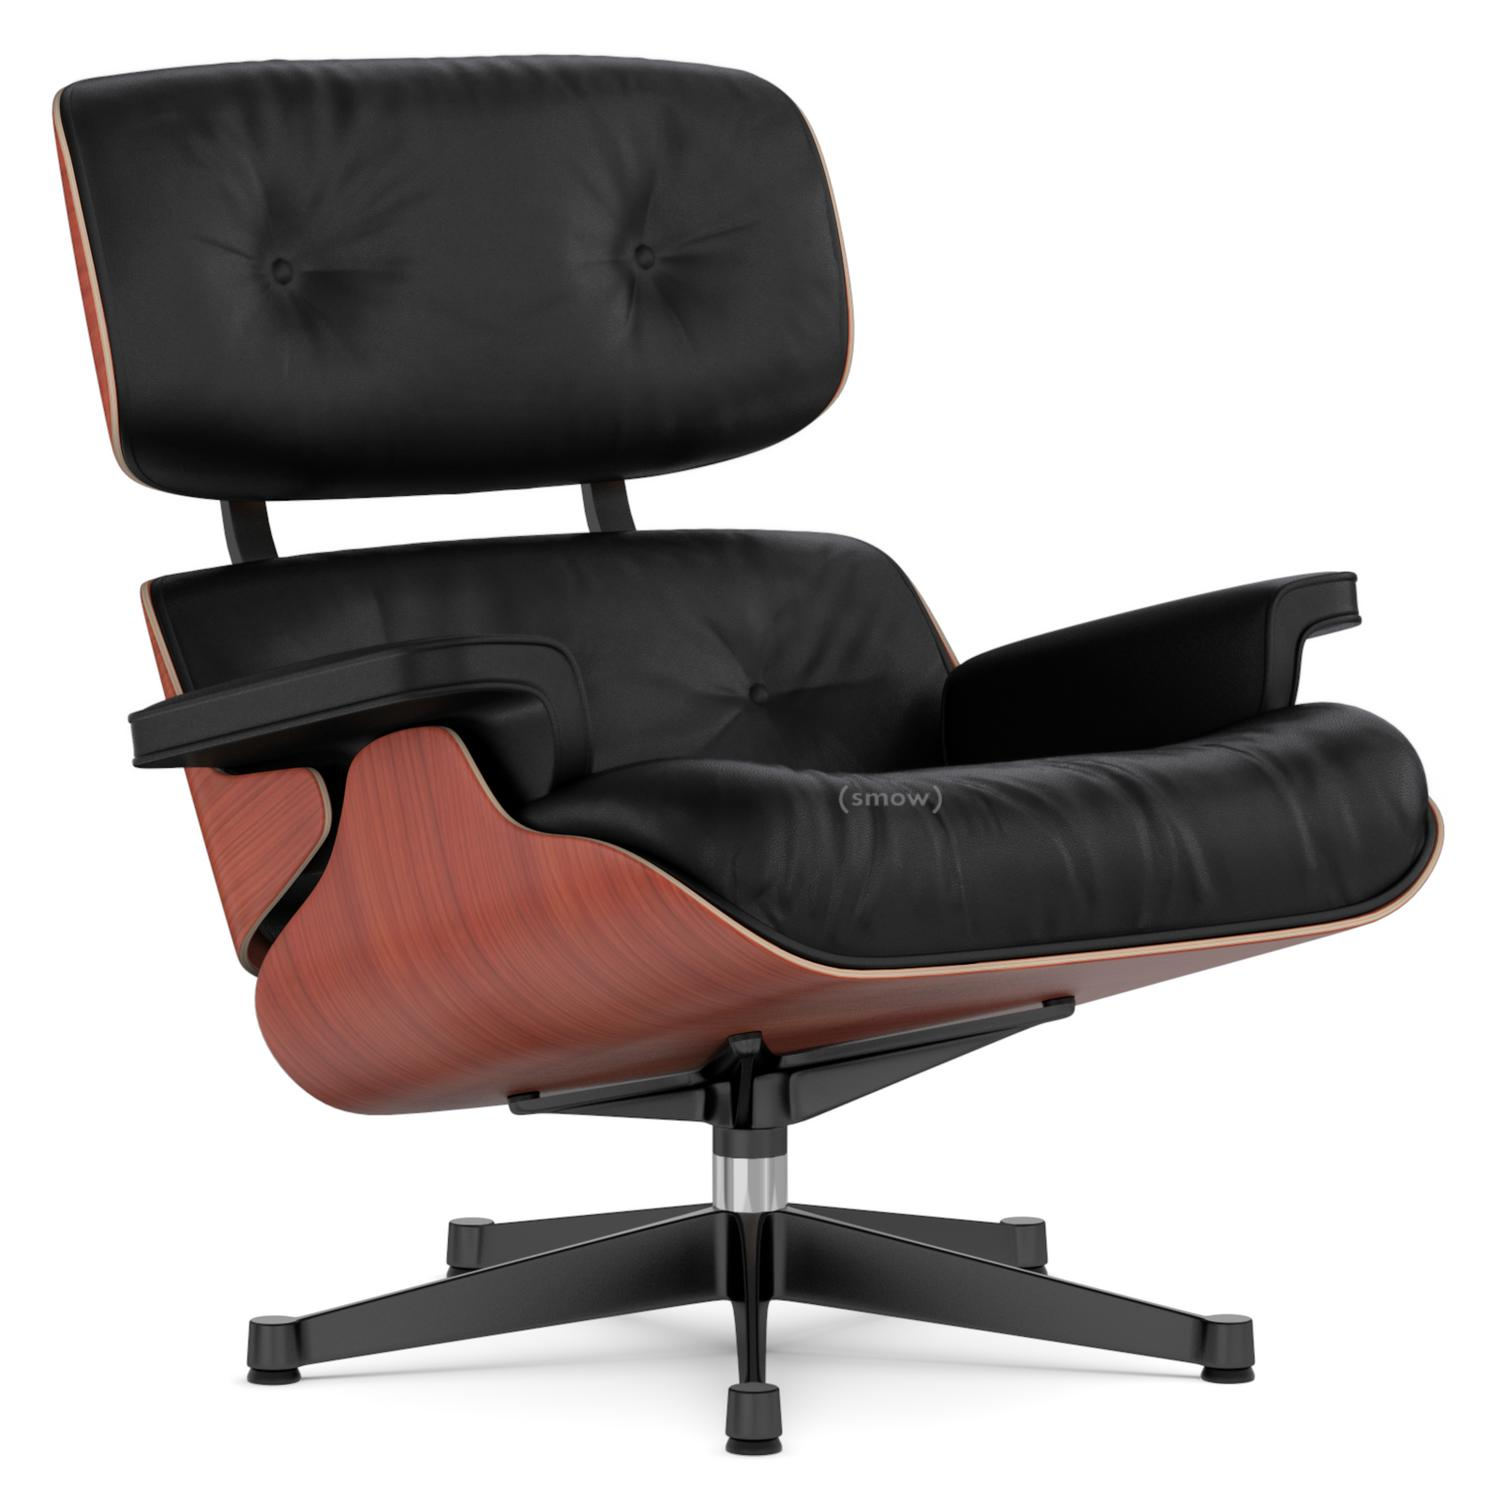 Vitra lounge chair von charles ray eames 1956 for Vitra lounge chair nachbau